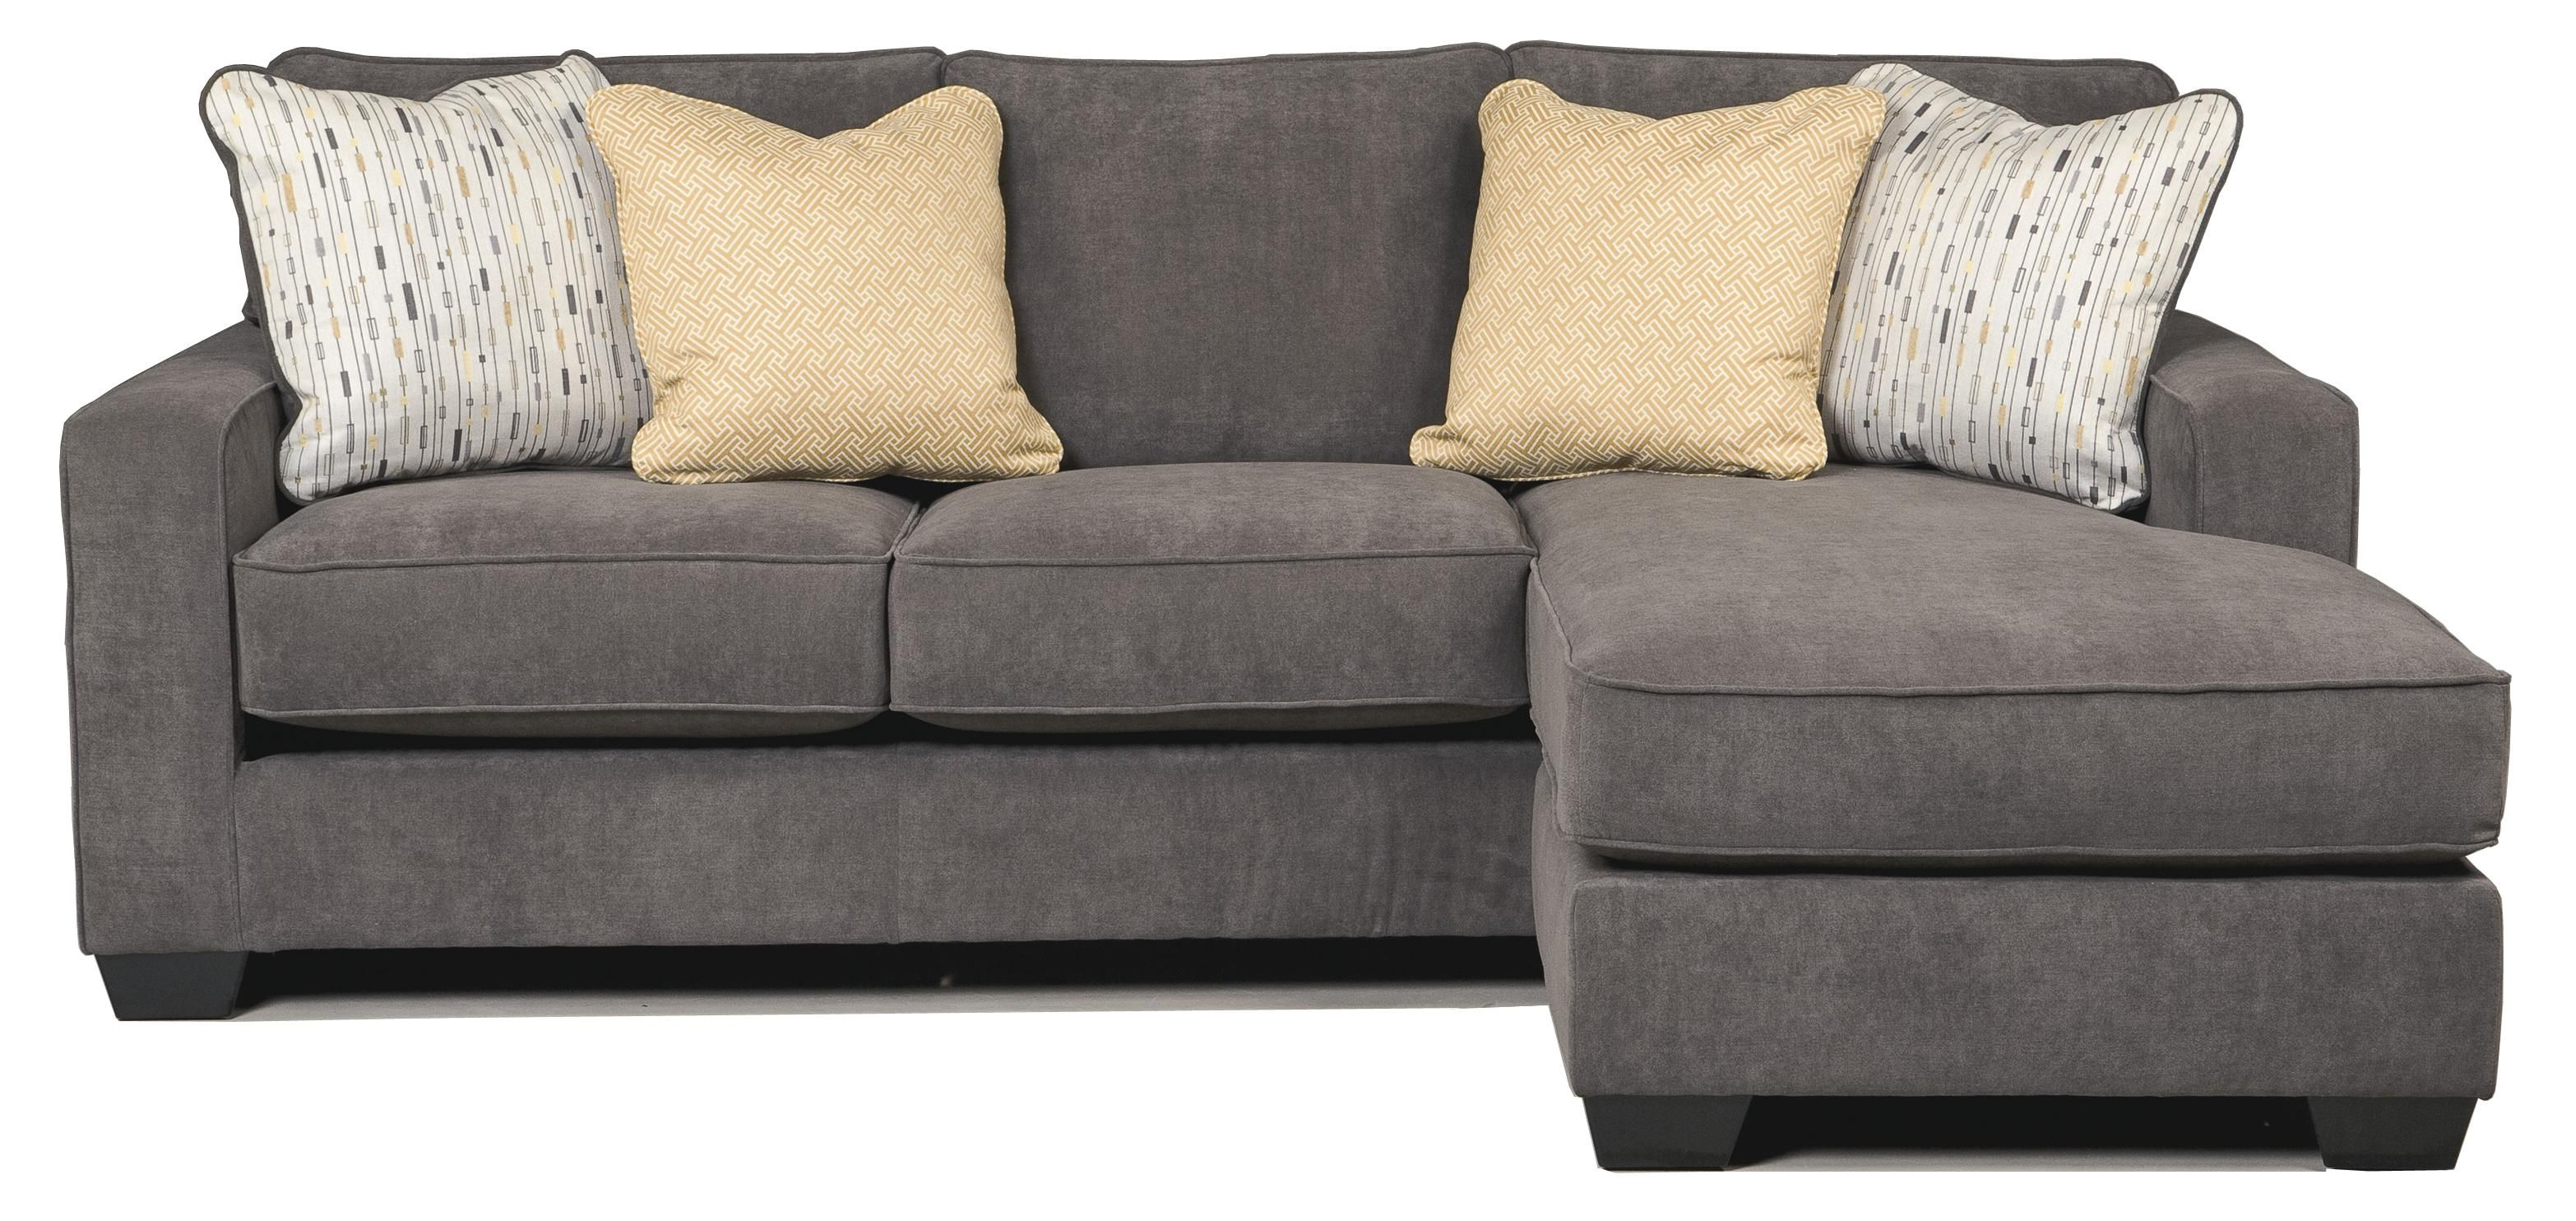 Hodan Marble Sofa Chaise By Signature Design By Ashley